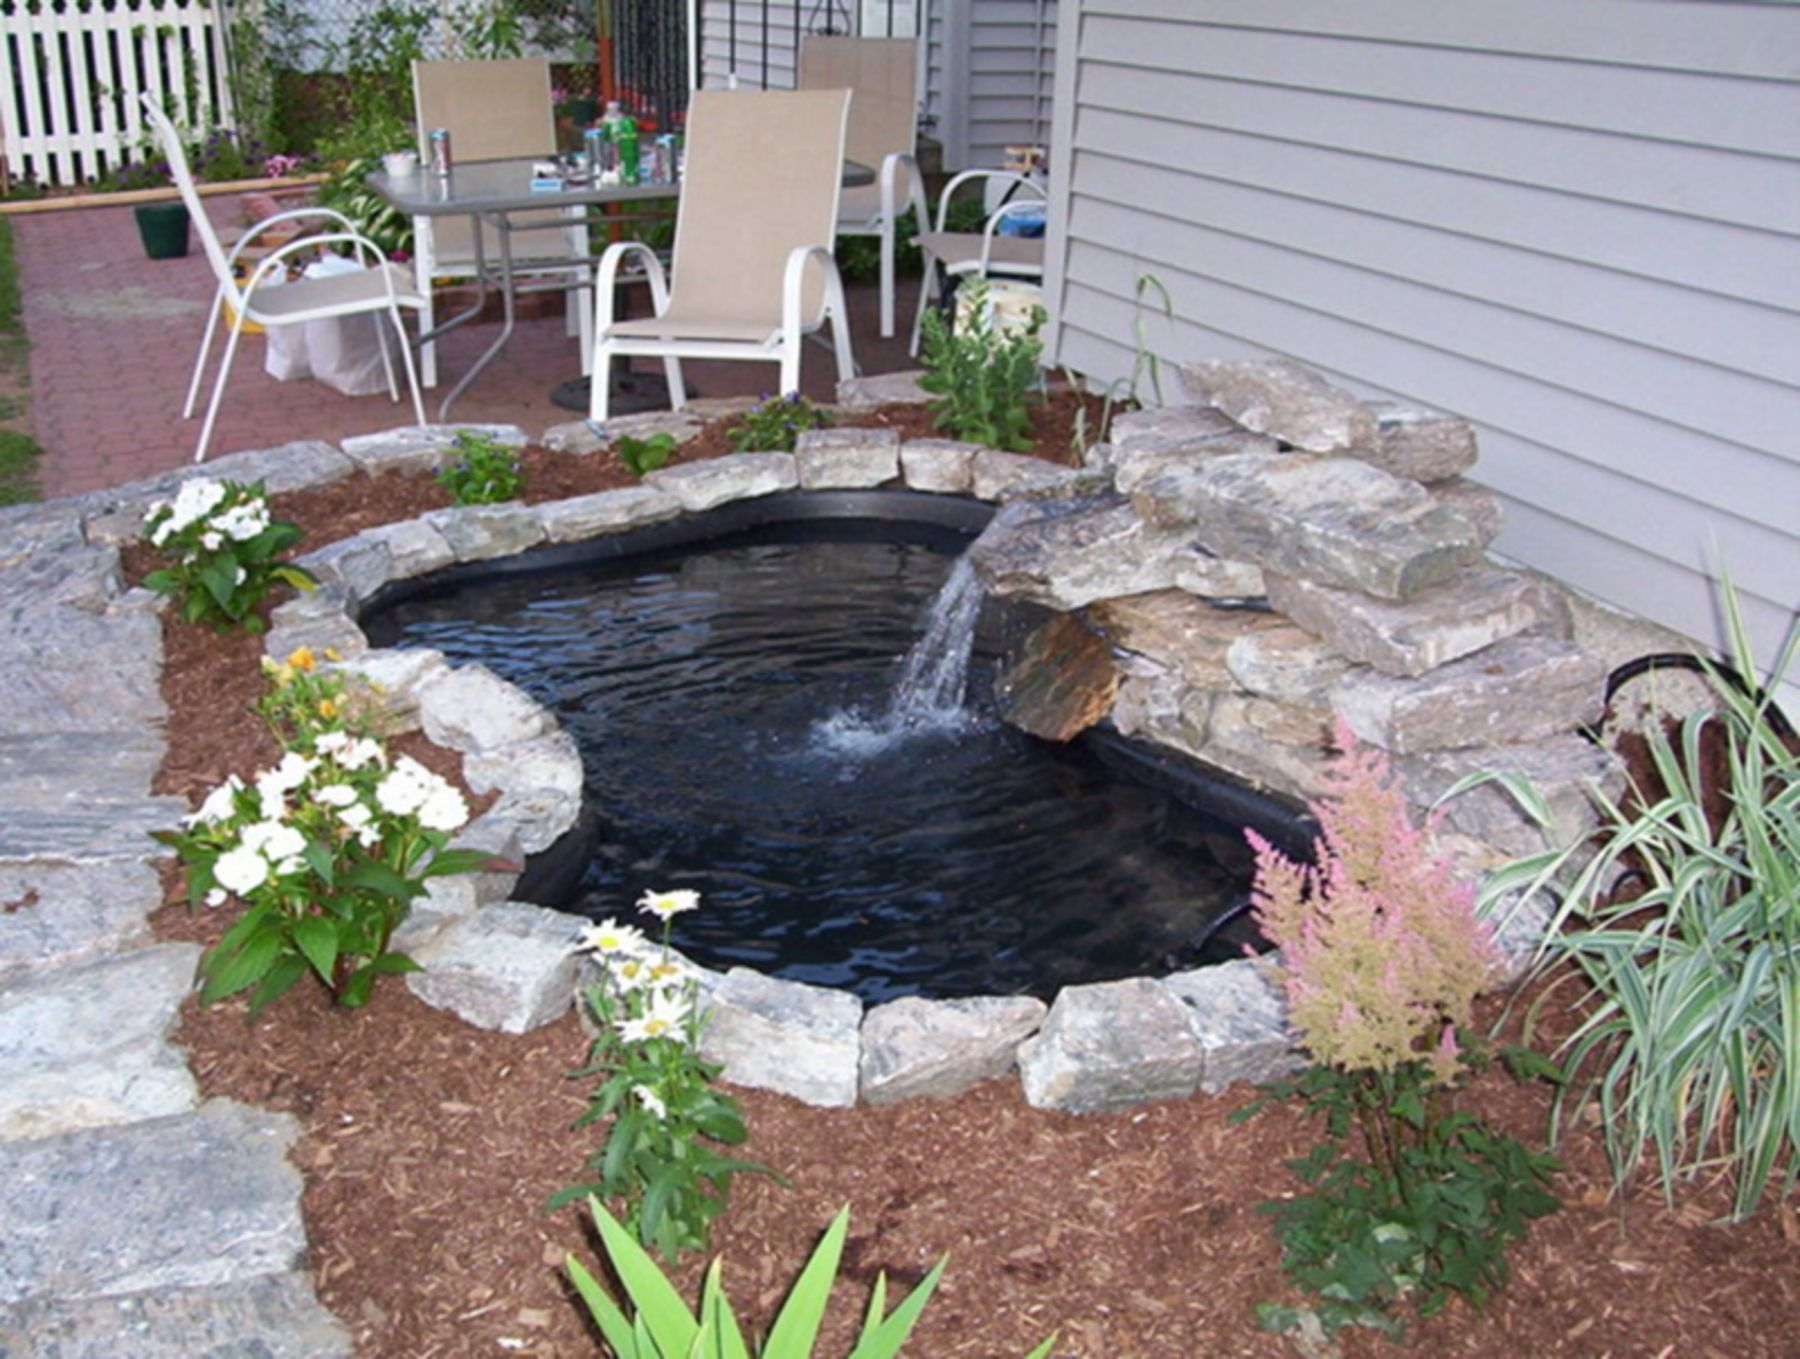 Comment Faire Un Bassin Exterieur Awesome 20 Beautiful Diy Koi Fish Pond Ideas For Your Home